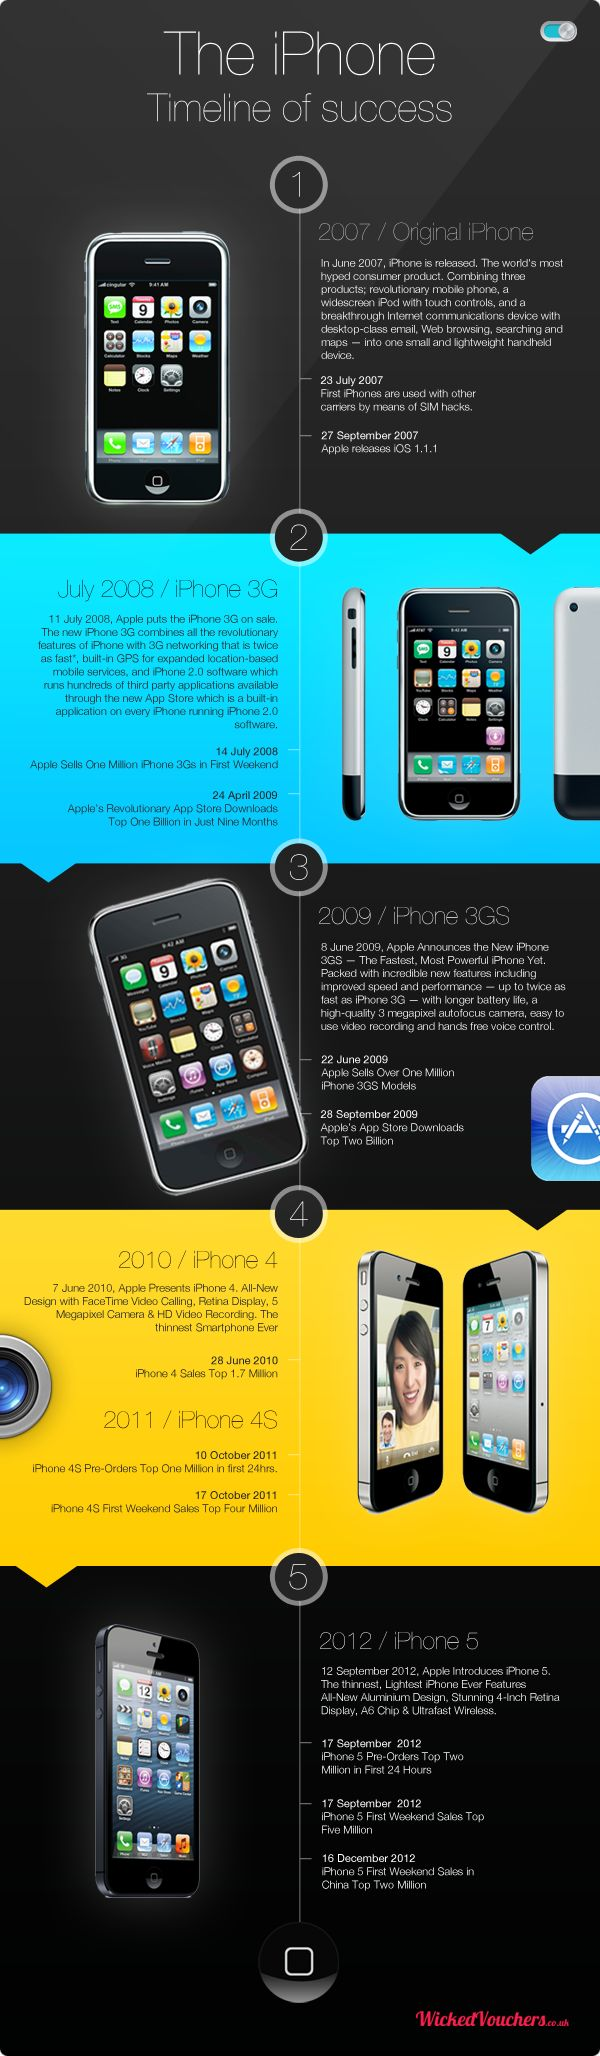 83 best iPhone Infographics images on Pinterest | Info graphics ...